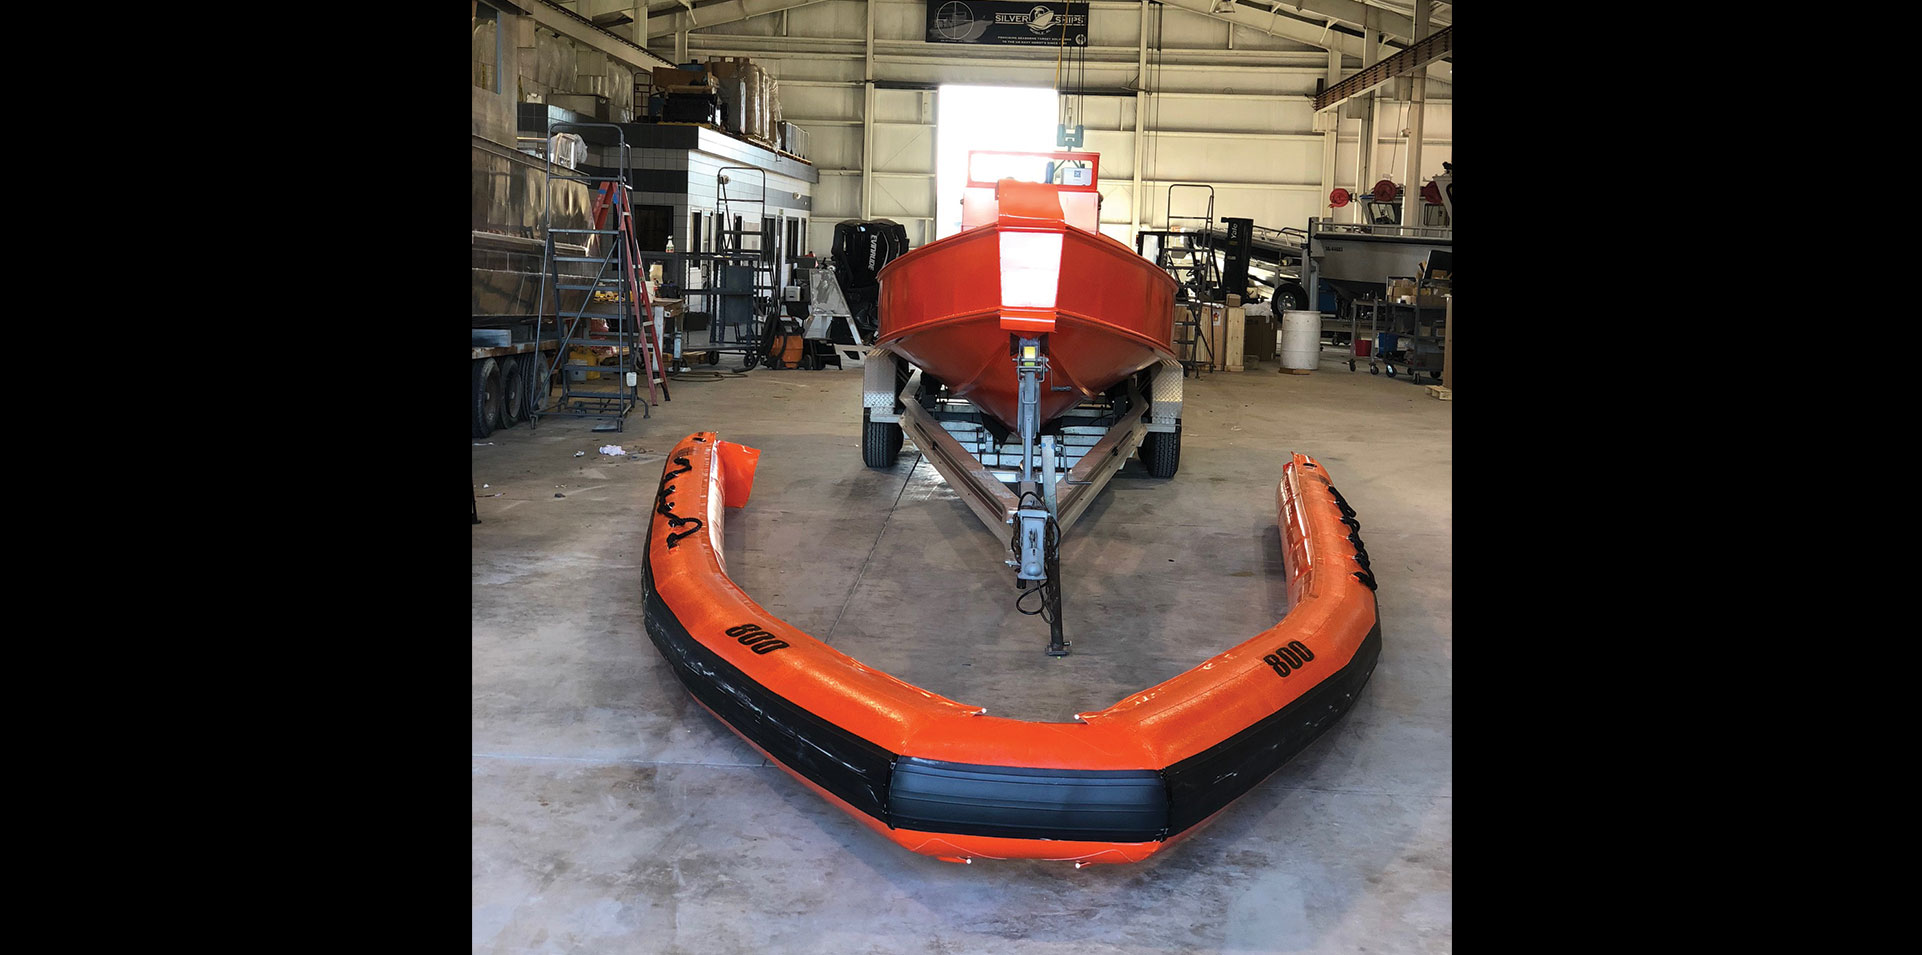 RHIB inflatable collar before added to Ambar boat